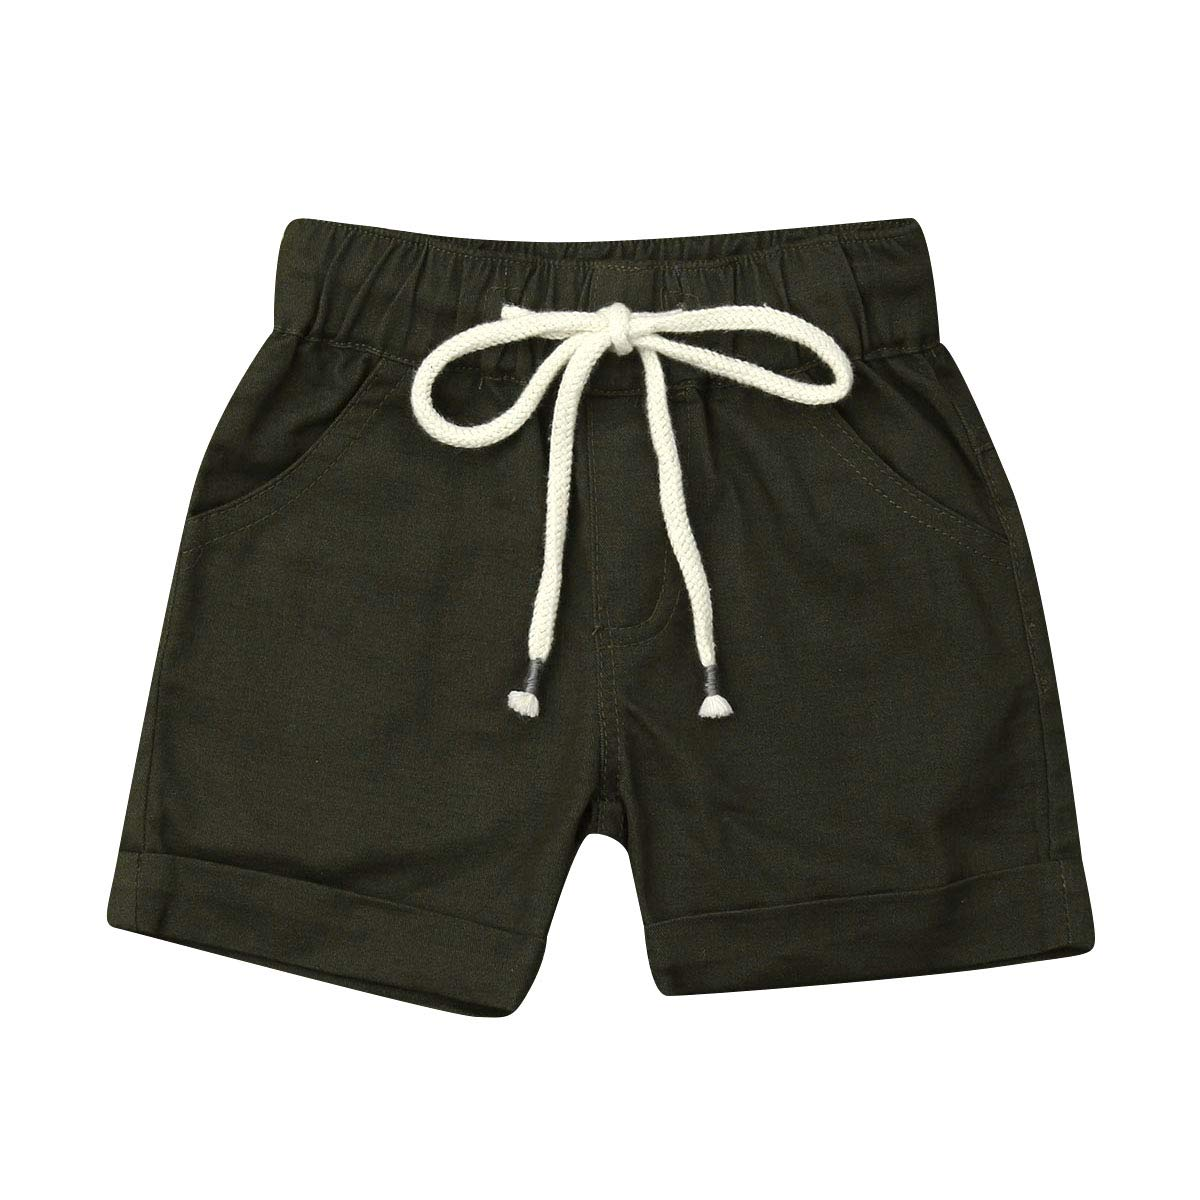 Douhoow Toddler Kids Baby Boys Shorts Summer Short Pants Bottom with Pocket